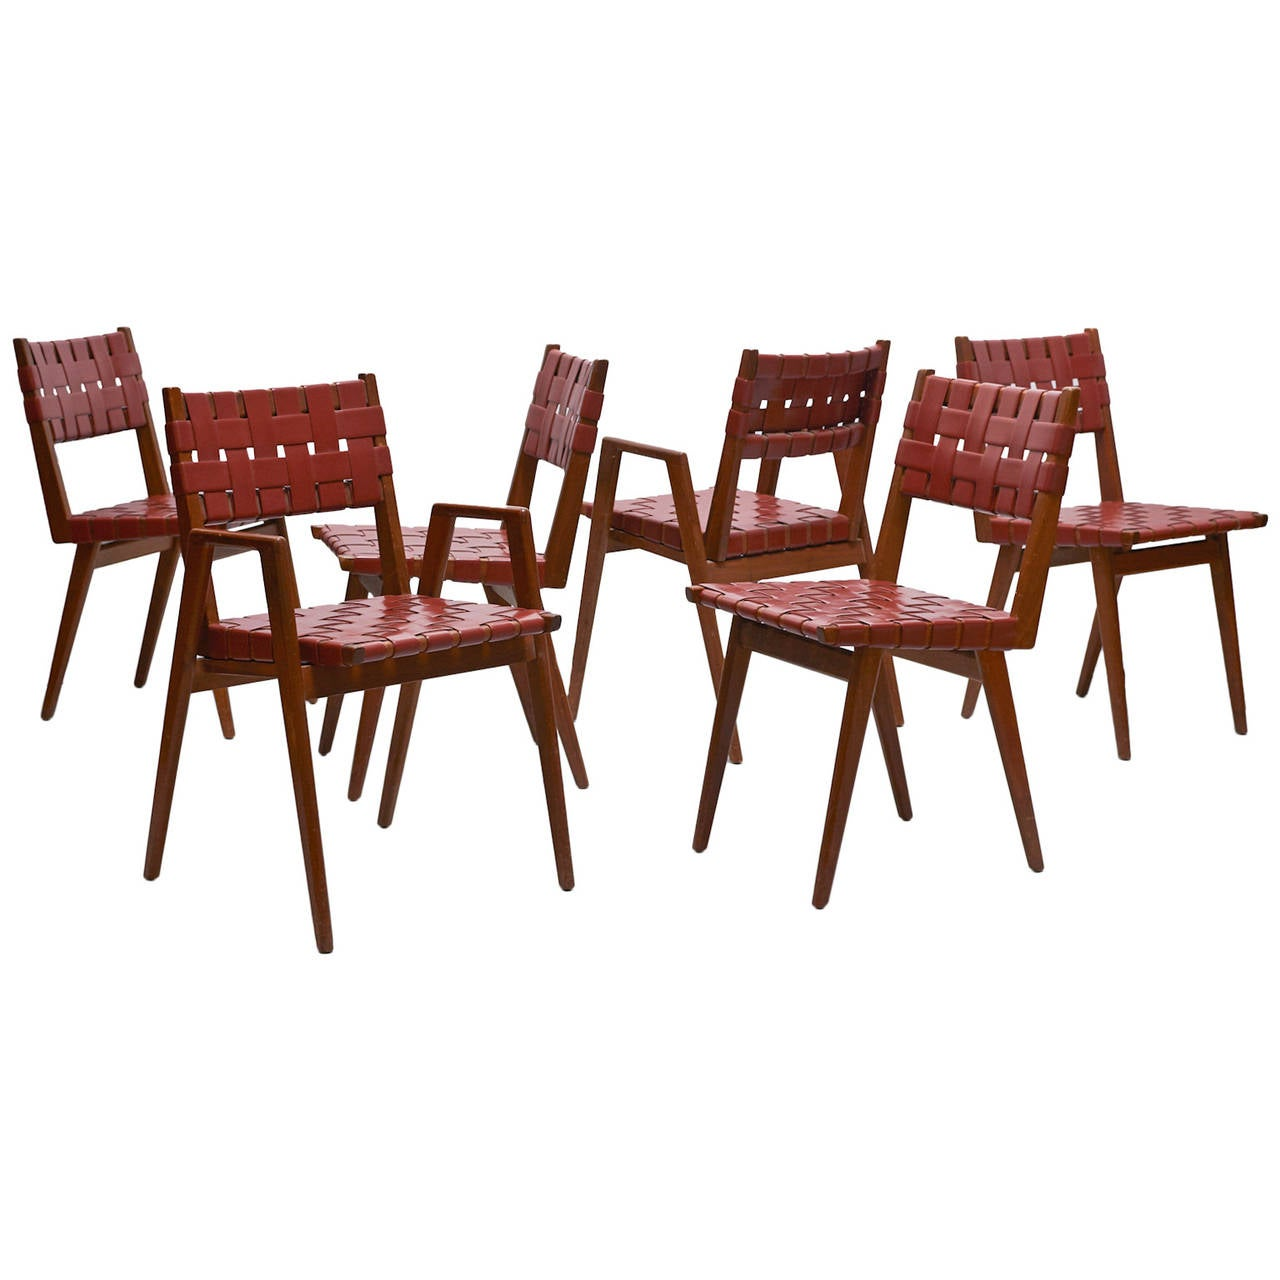 Jens risom attributed early webbed dining chairs set of six for sale at 1stdibs - Jens risom dining chairs ...